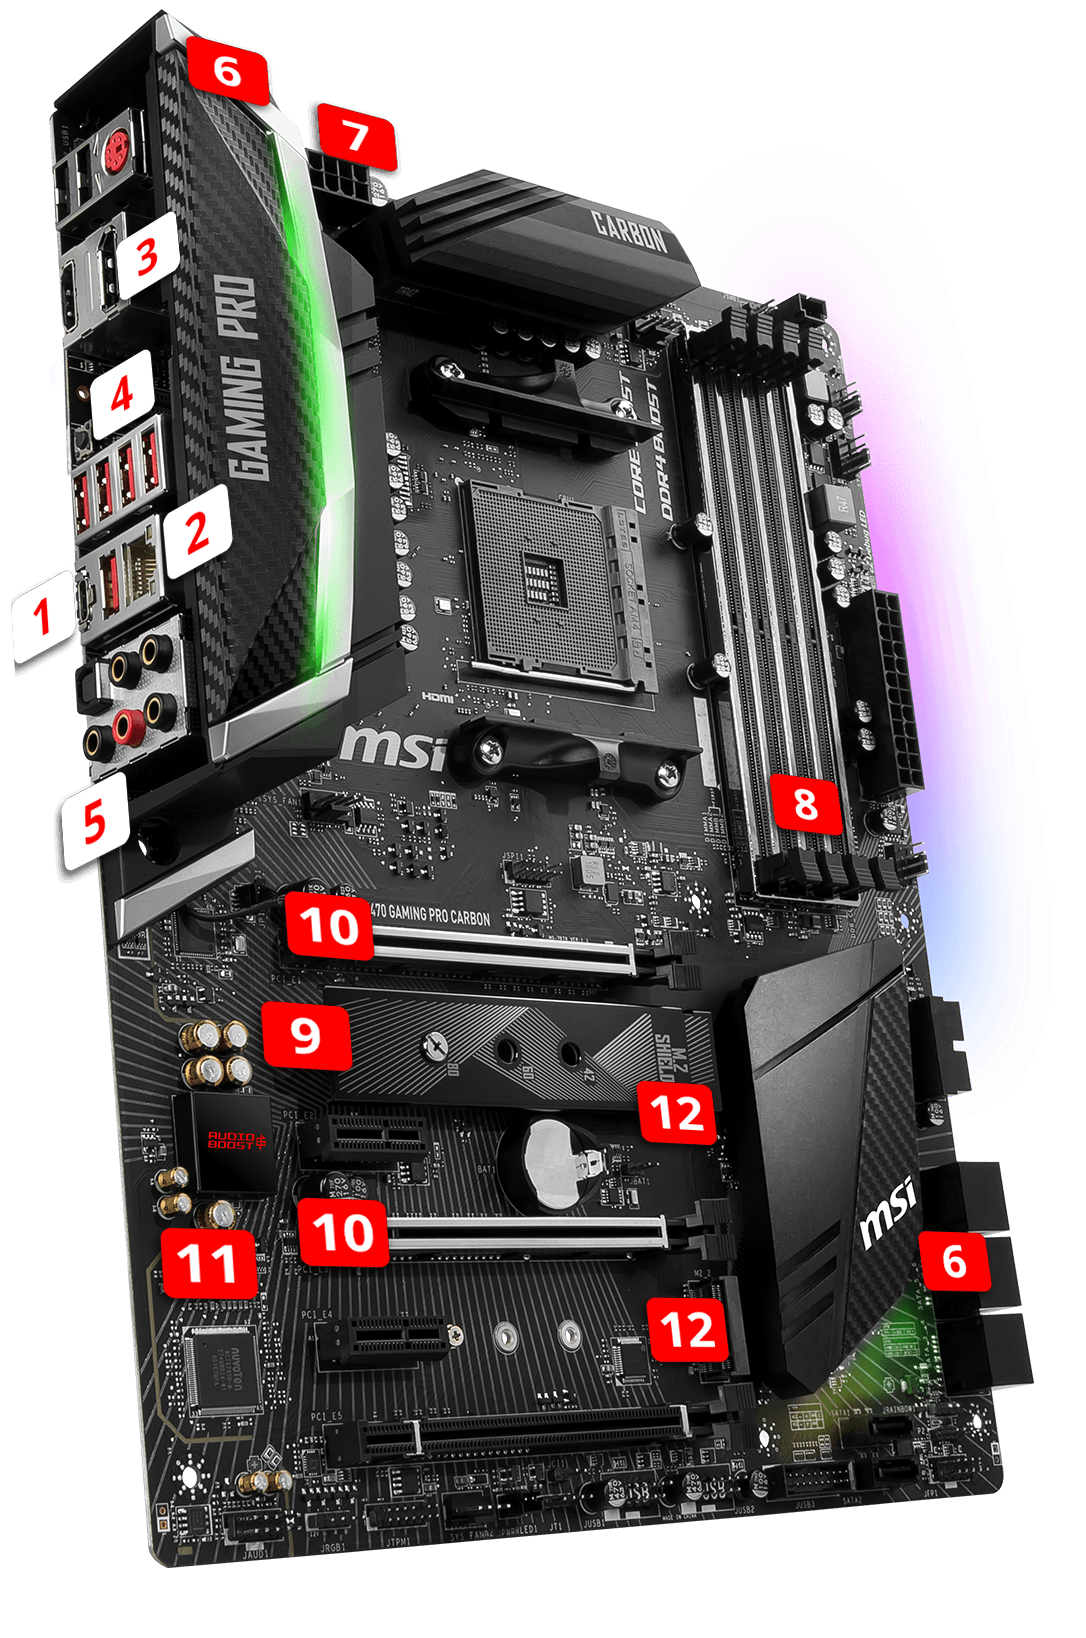 MSI X470 GAMING PRO CARBON overview